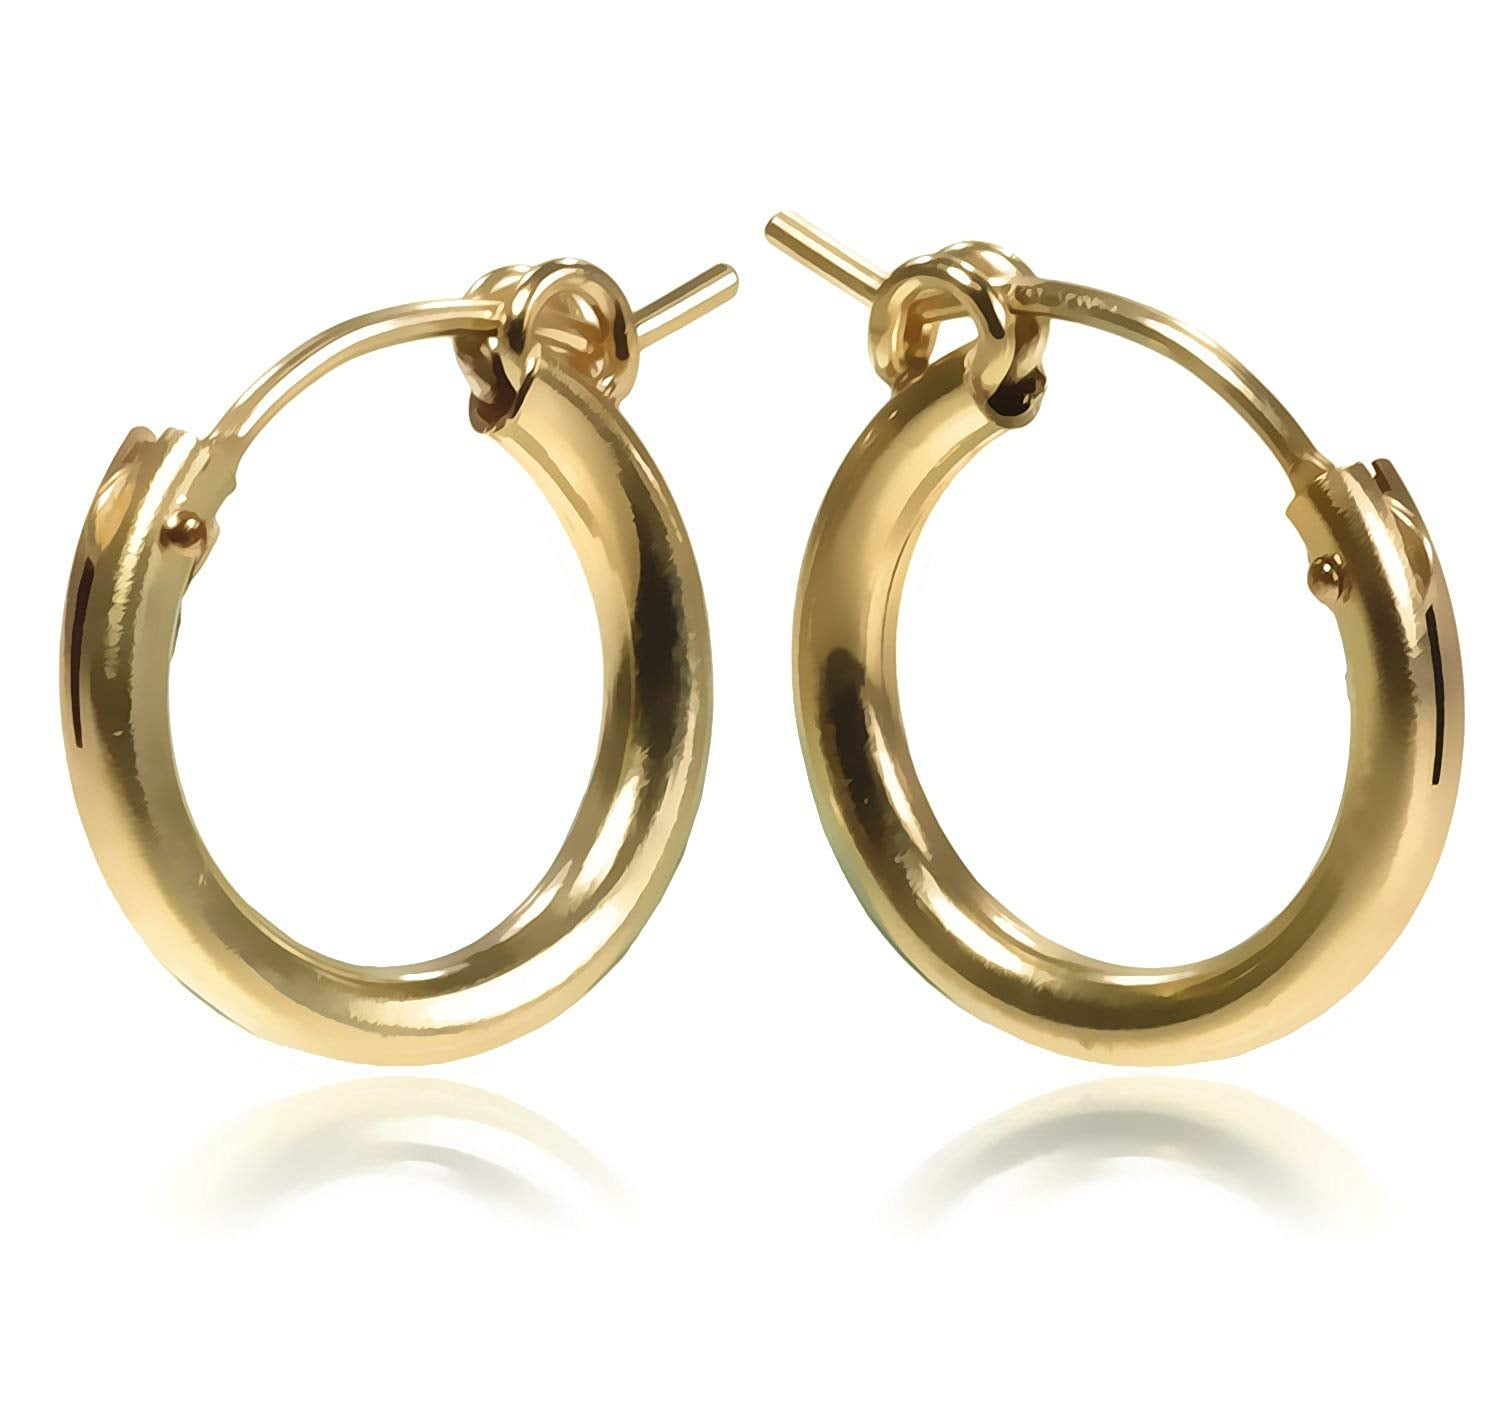 14k Gold Filled 16 x 2mm Tube Hoop Earrings